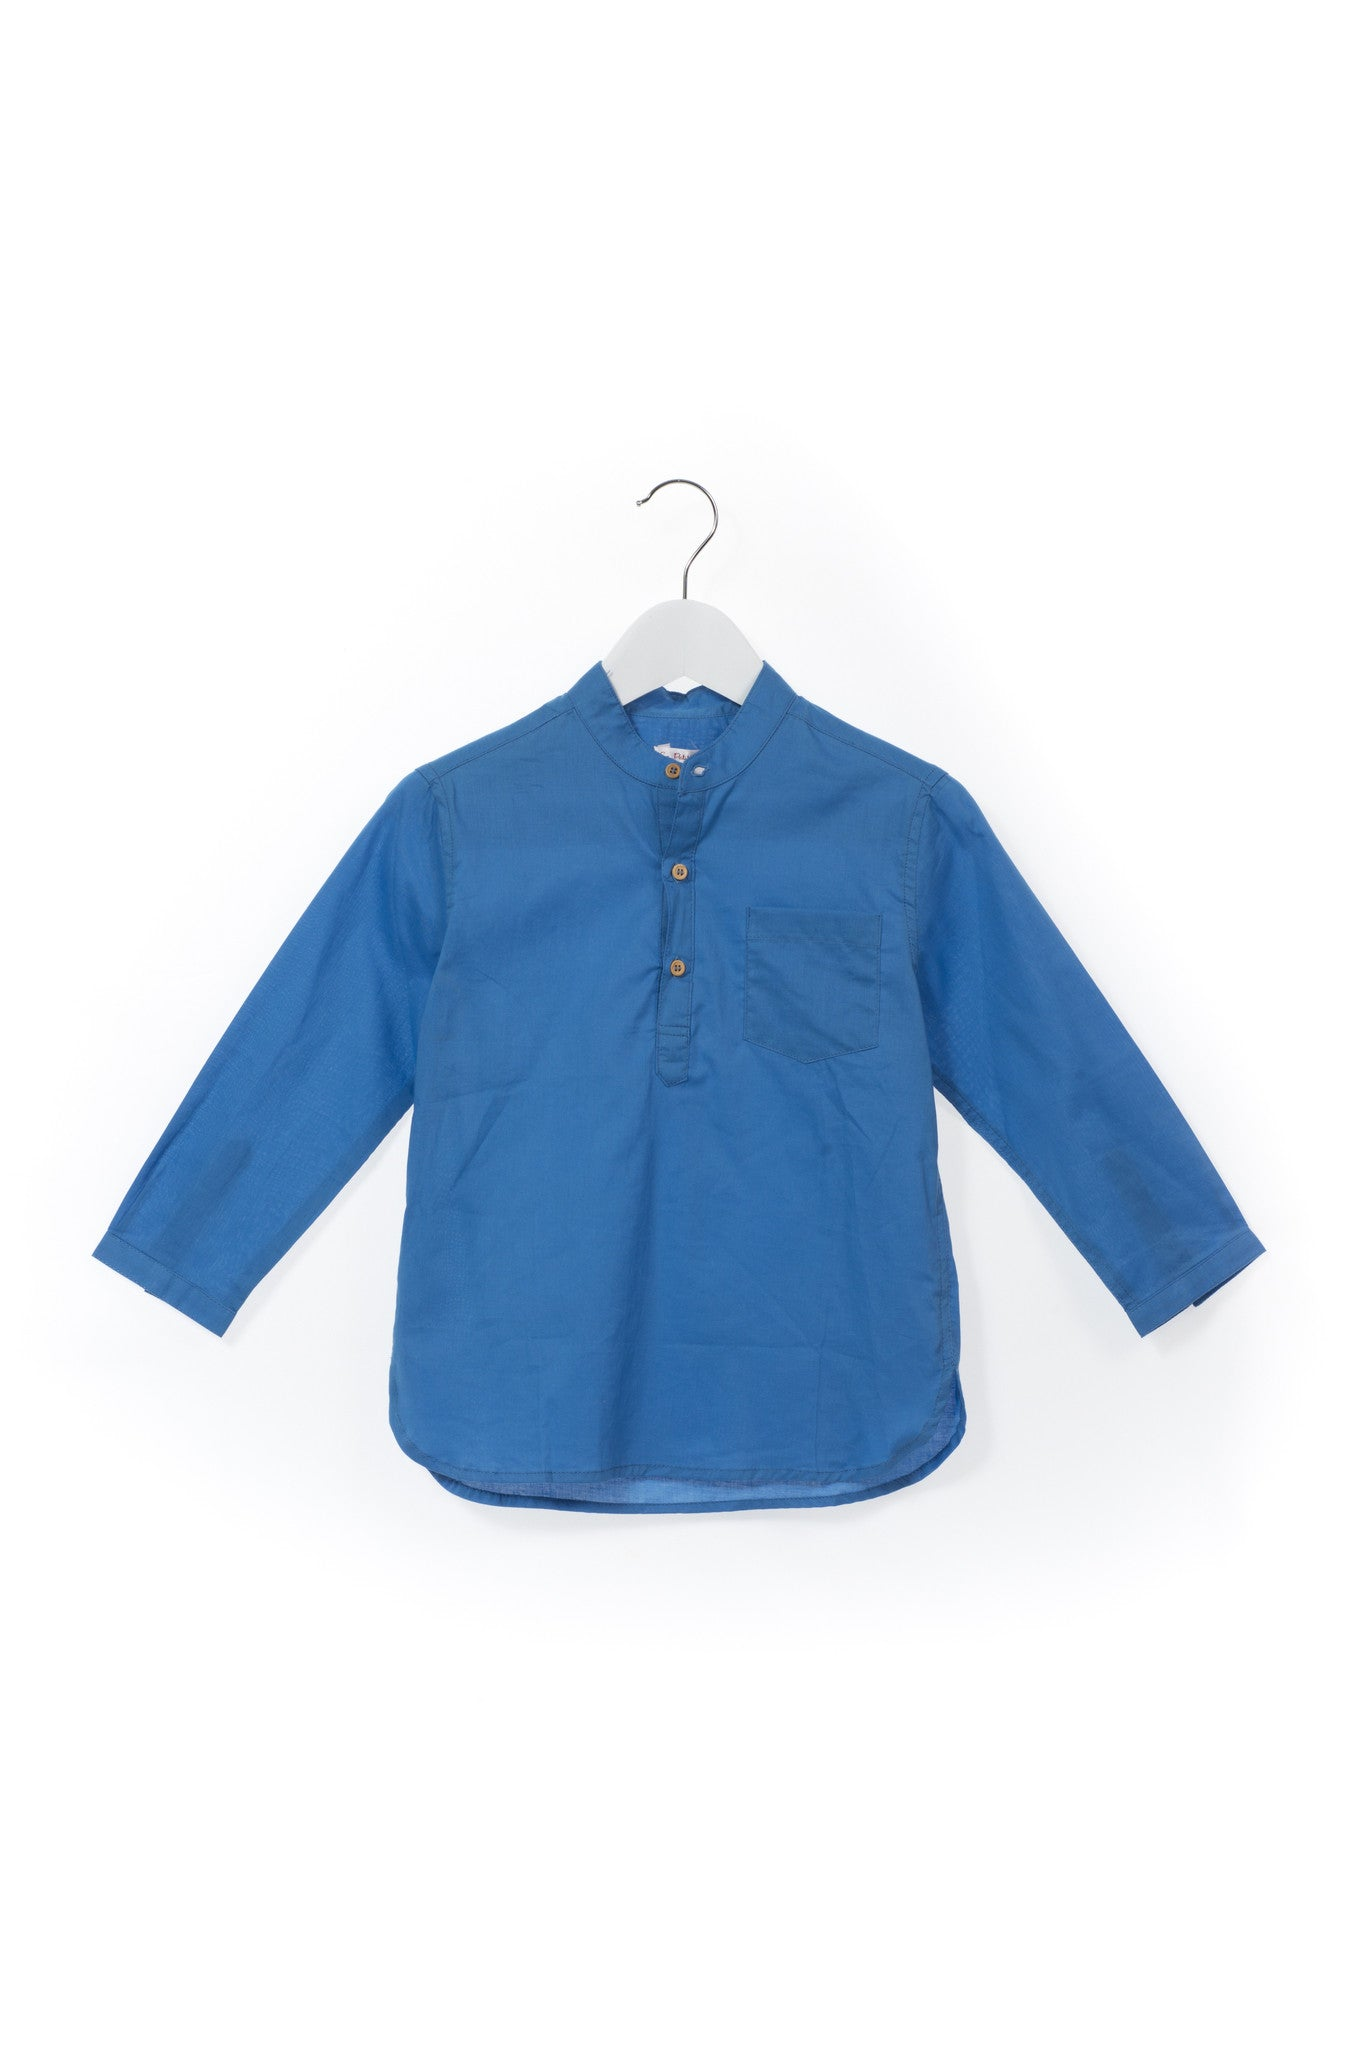 10001180 La Petite Caravane Kids~Shirt 3T at Retykle